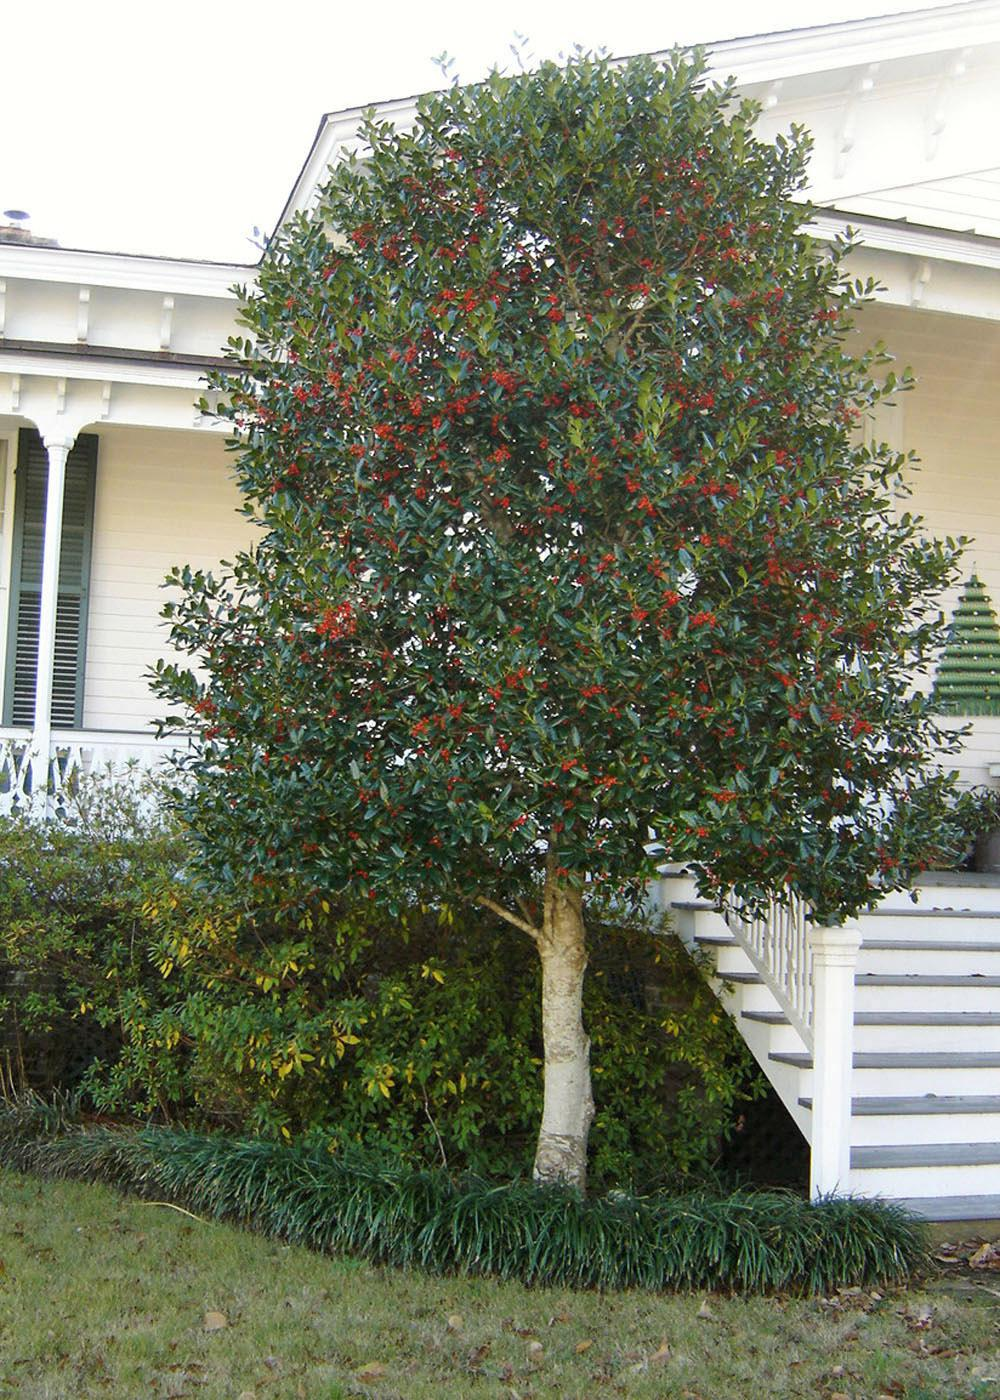 A Nellie R. Stevens holly provides pleasing winter color to this home landscape, holding its abundant fruit through the dreary winter months. (Photo by Jeff Wilson)